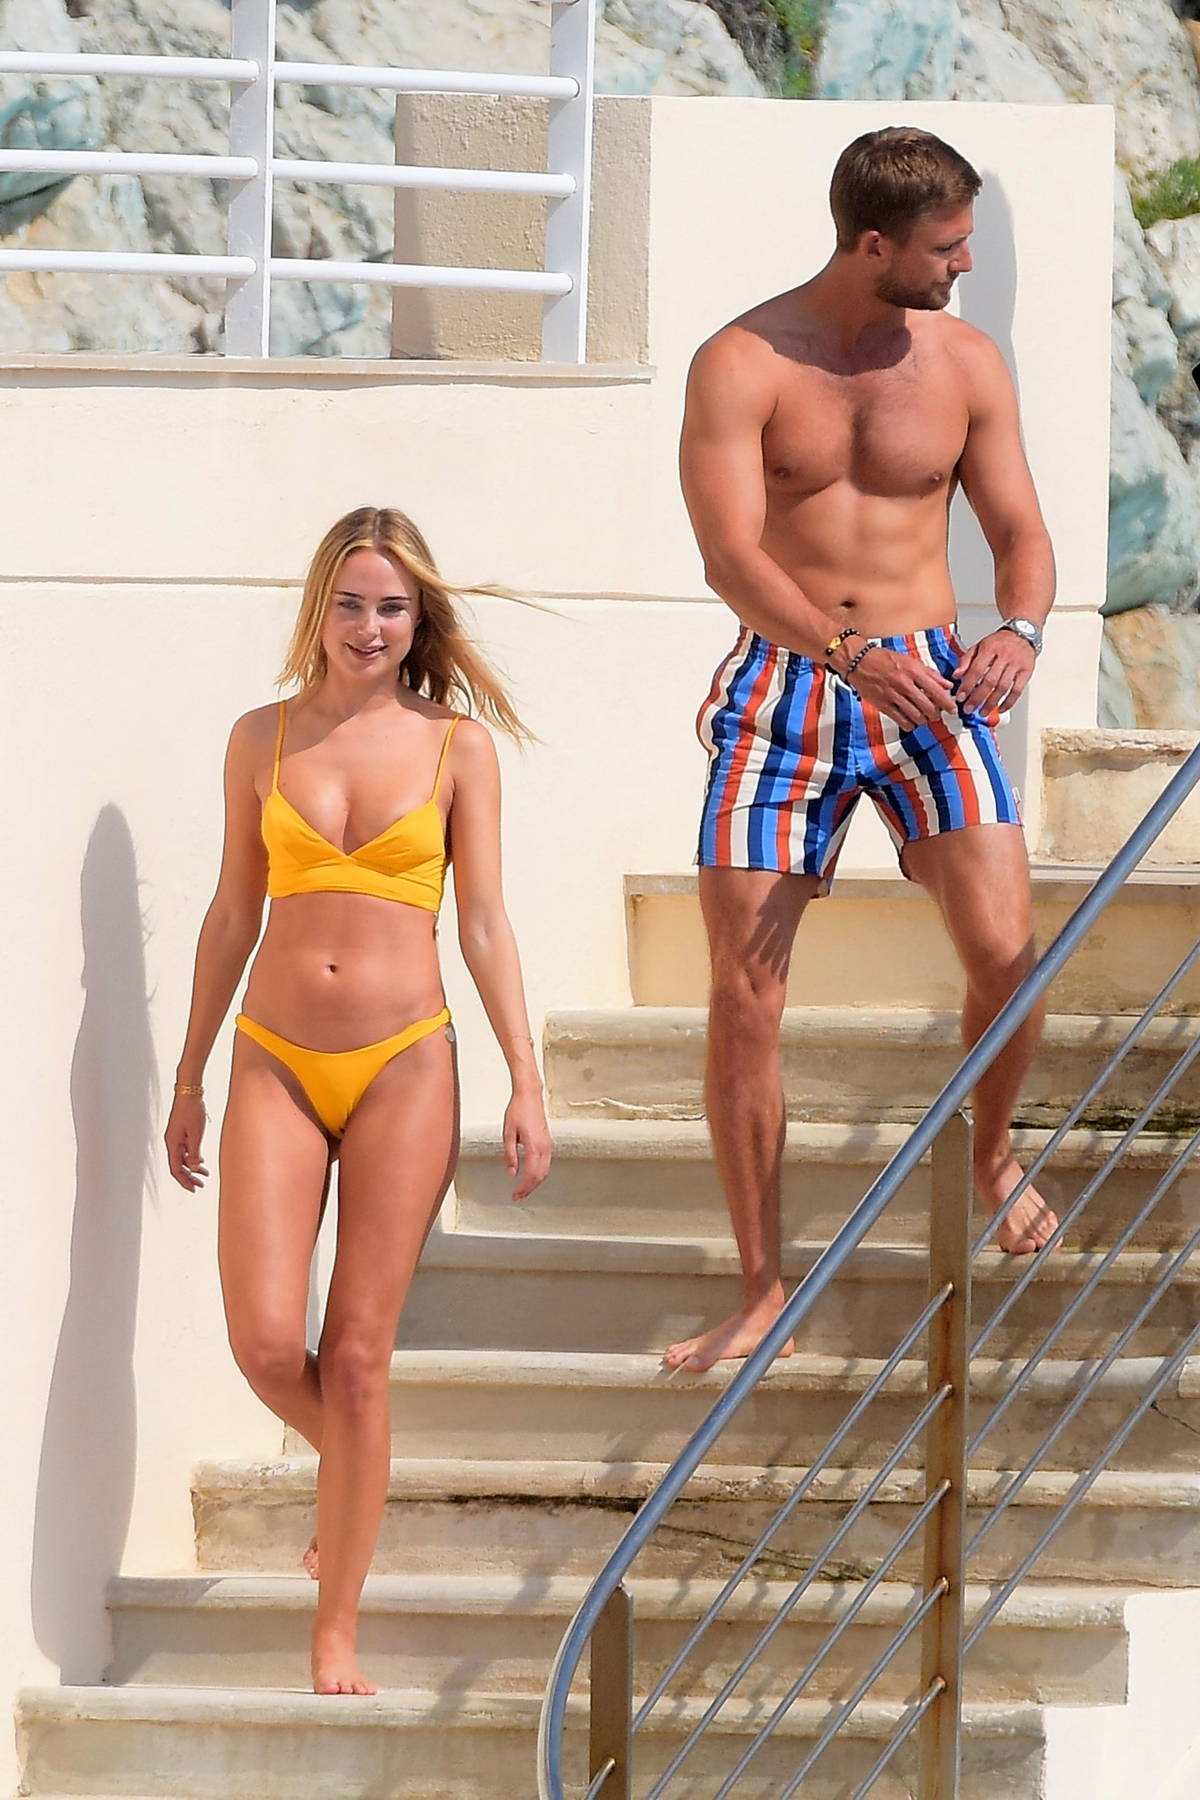 Kimberley Garner shows off her incredible physique in a yellow bikini while enjoying the sun in Antibes, France